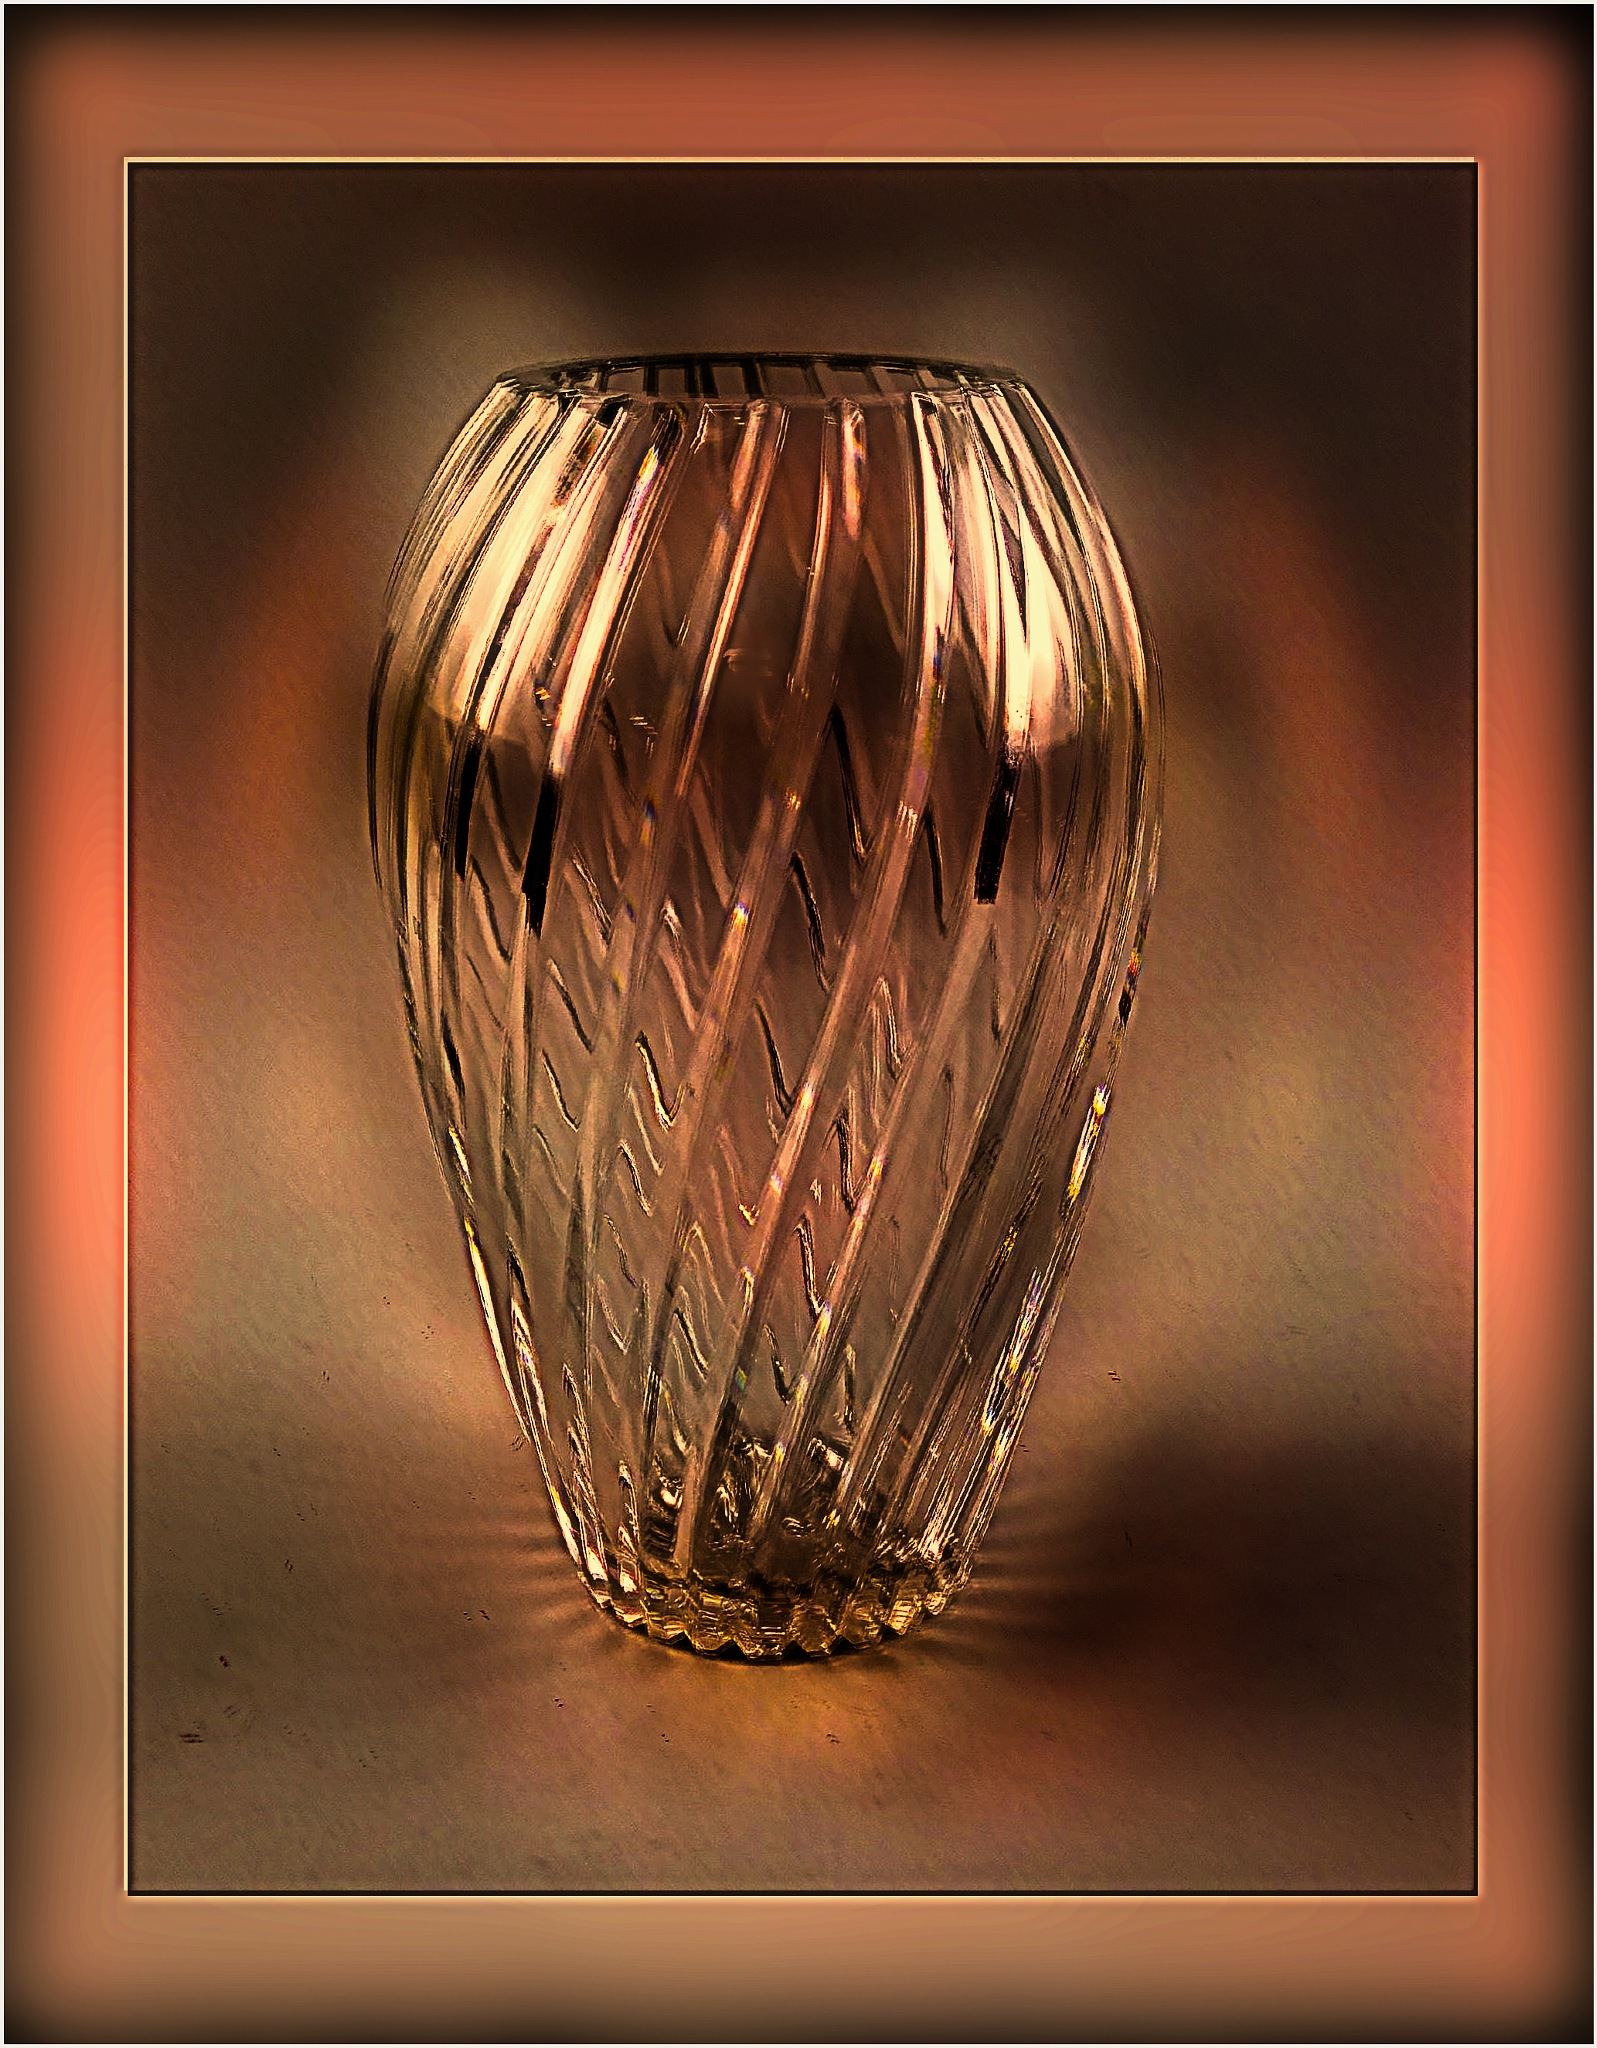 Chrystal Vase on Auction by Mikael Rennerhorn